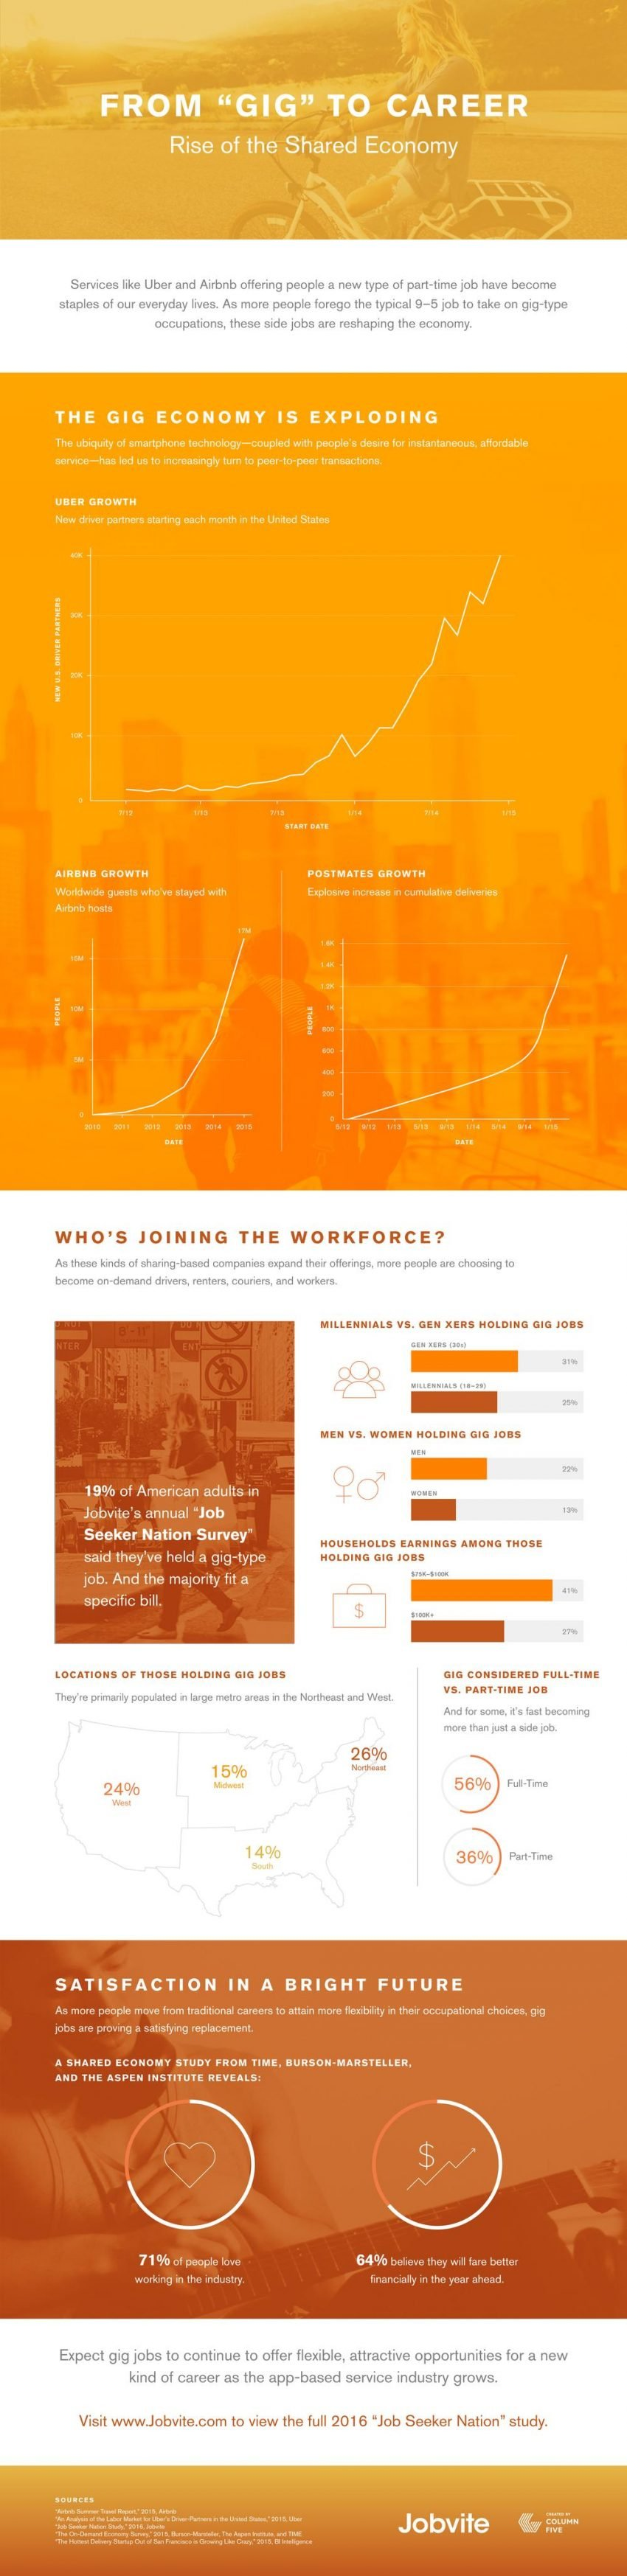 The Gig Economy - From Gig to Career Infographic